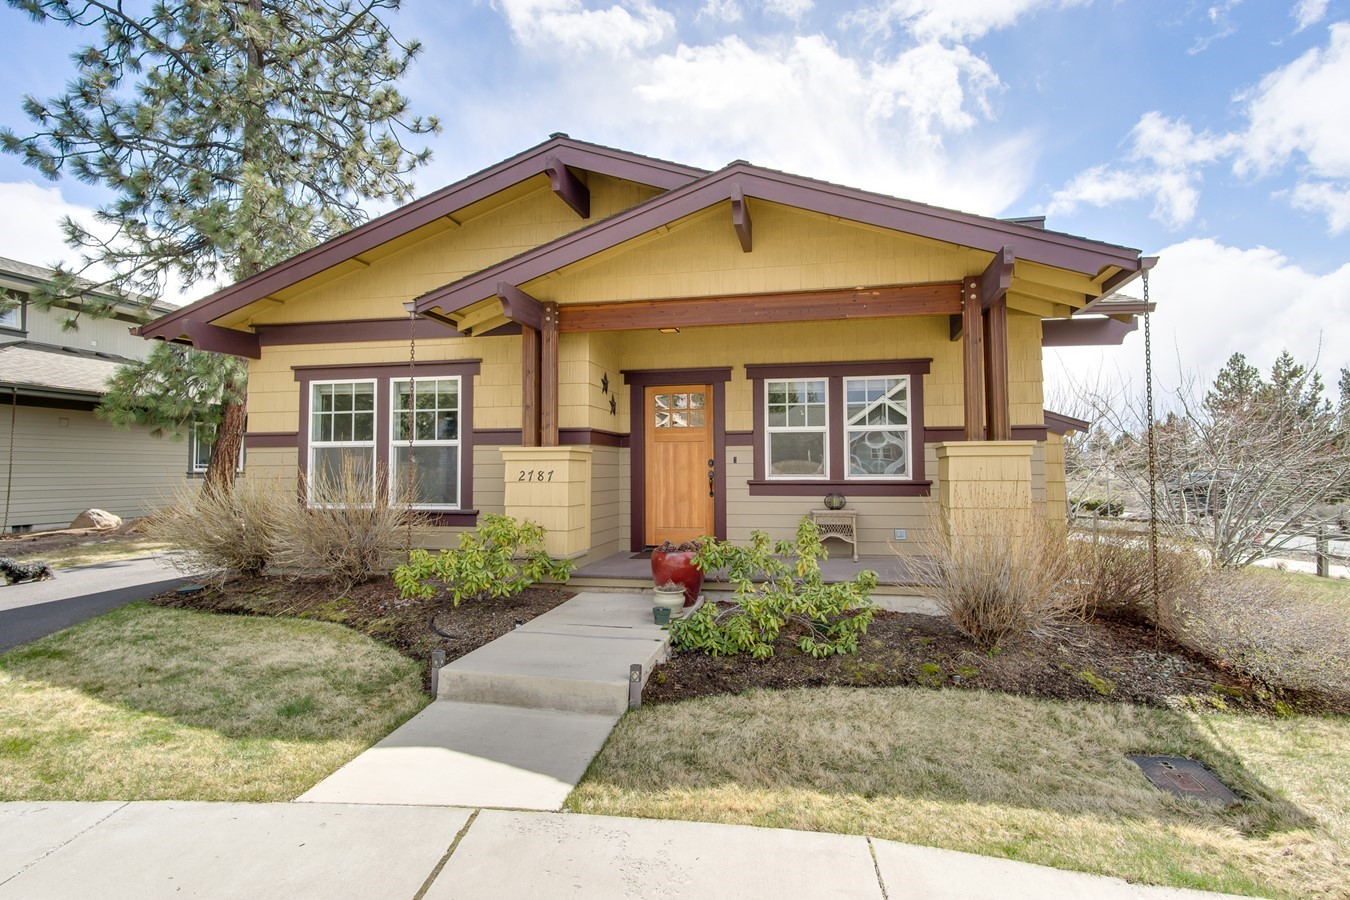 5611 sheldon road - Charming Home In Northwest Crossing 2787 Northwest Colter Avenue Bend Or 97703